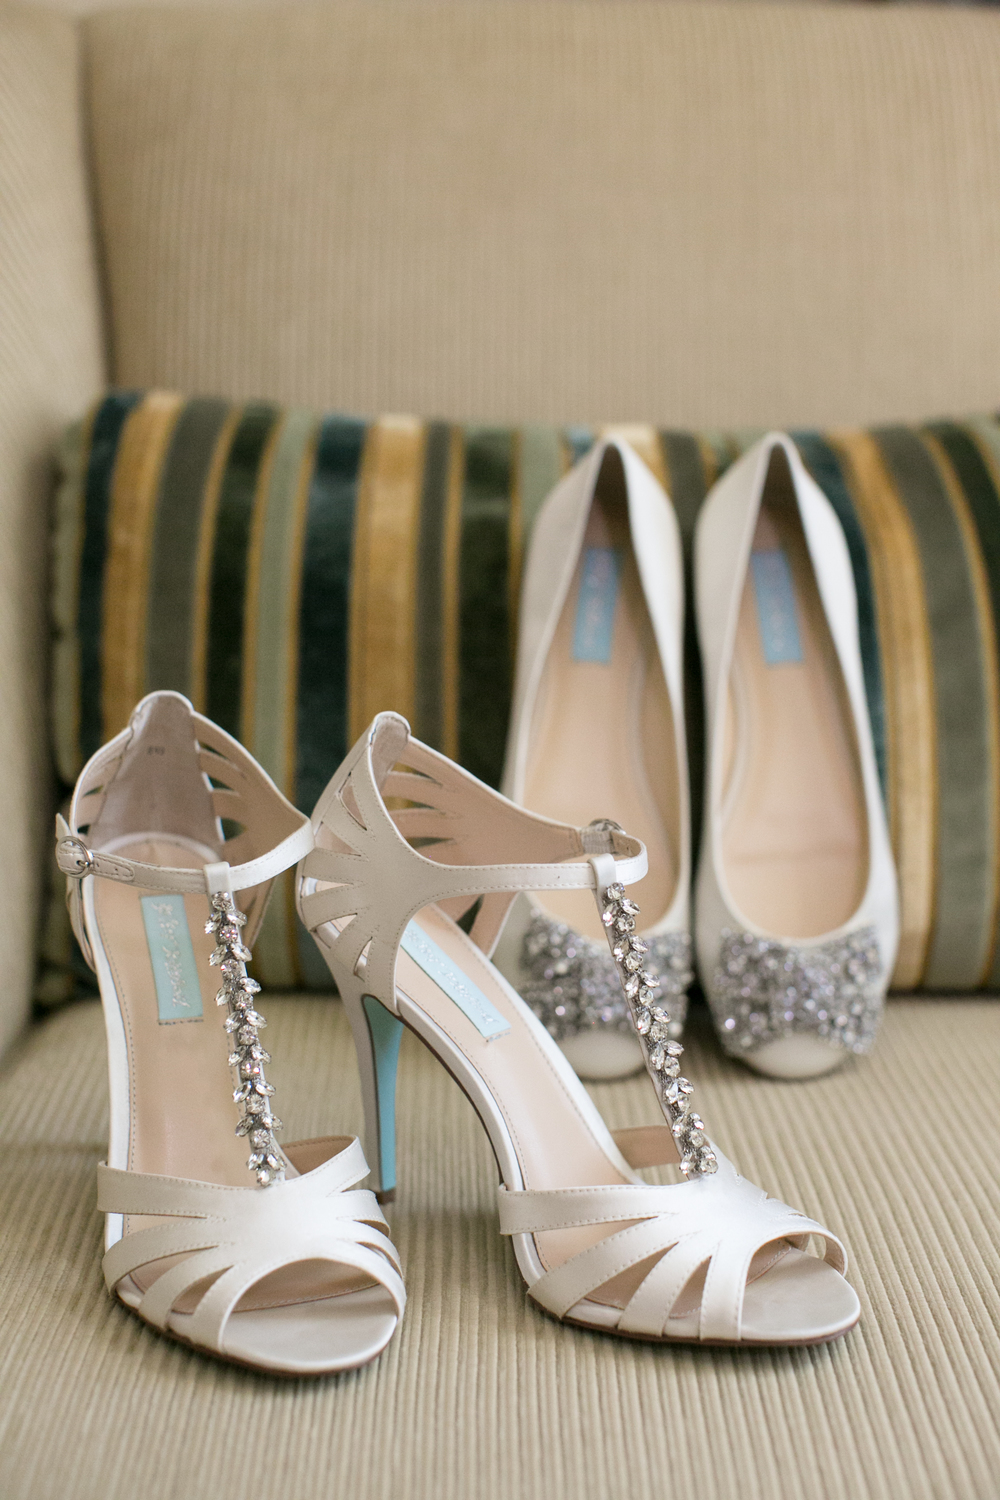 Betsey Johnson Wedding Shoes with a Blue Bottom and Strap. Las Vegas Wedding Planner Andrea Eppolito  |  Wedding at The Venetian Las Vegas  |  Florals and Decor by Naakiti Floral  |  Photos by Meg Ruth